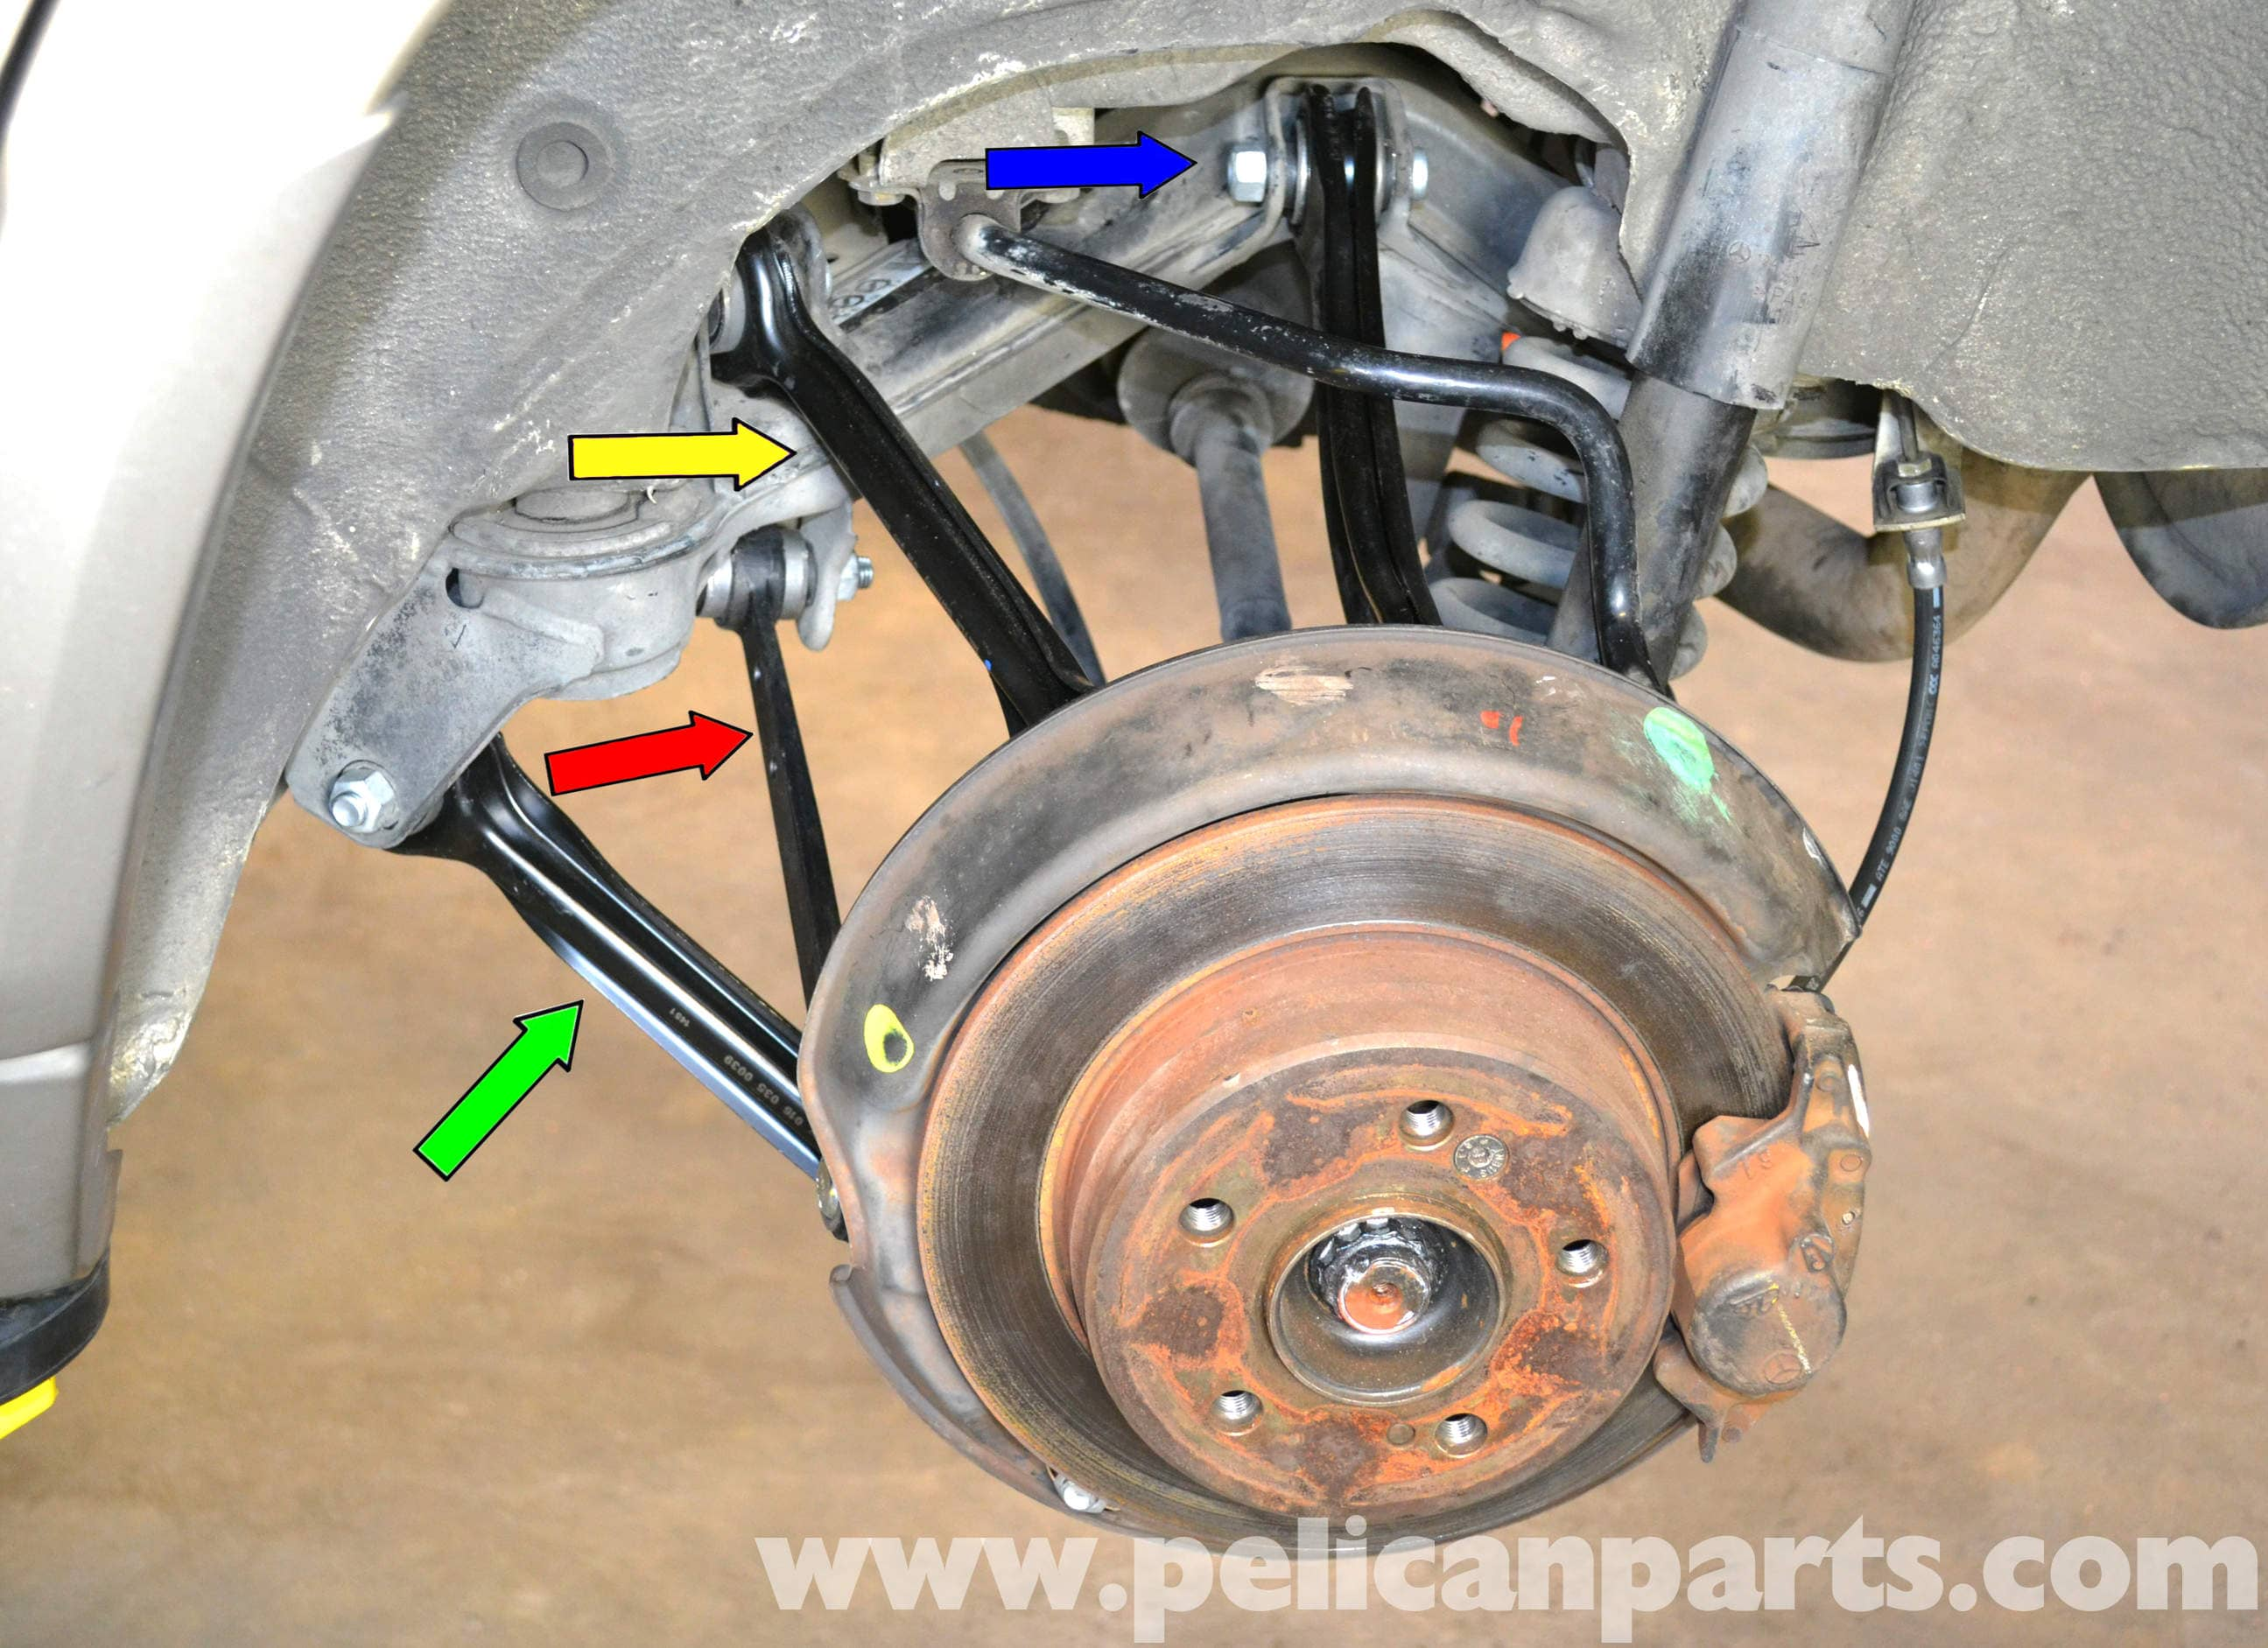 Mercedes benz w124 rear multi link suspension replacement for Mercedes benz w124 parts